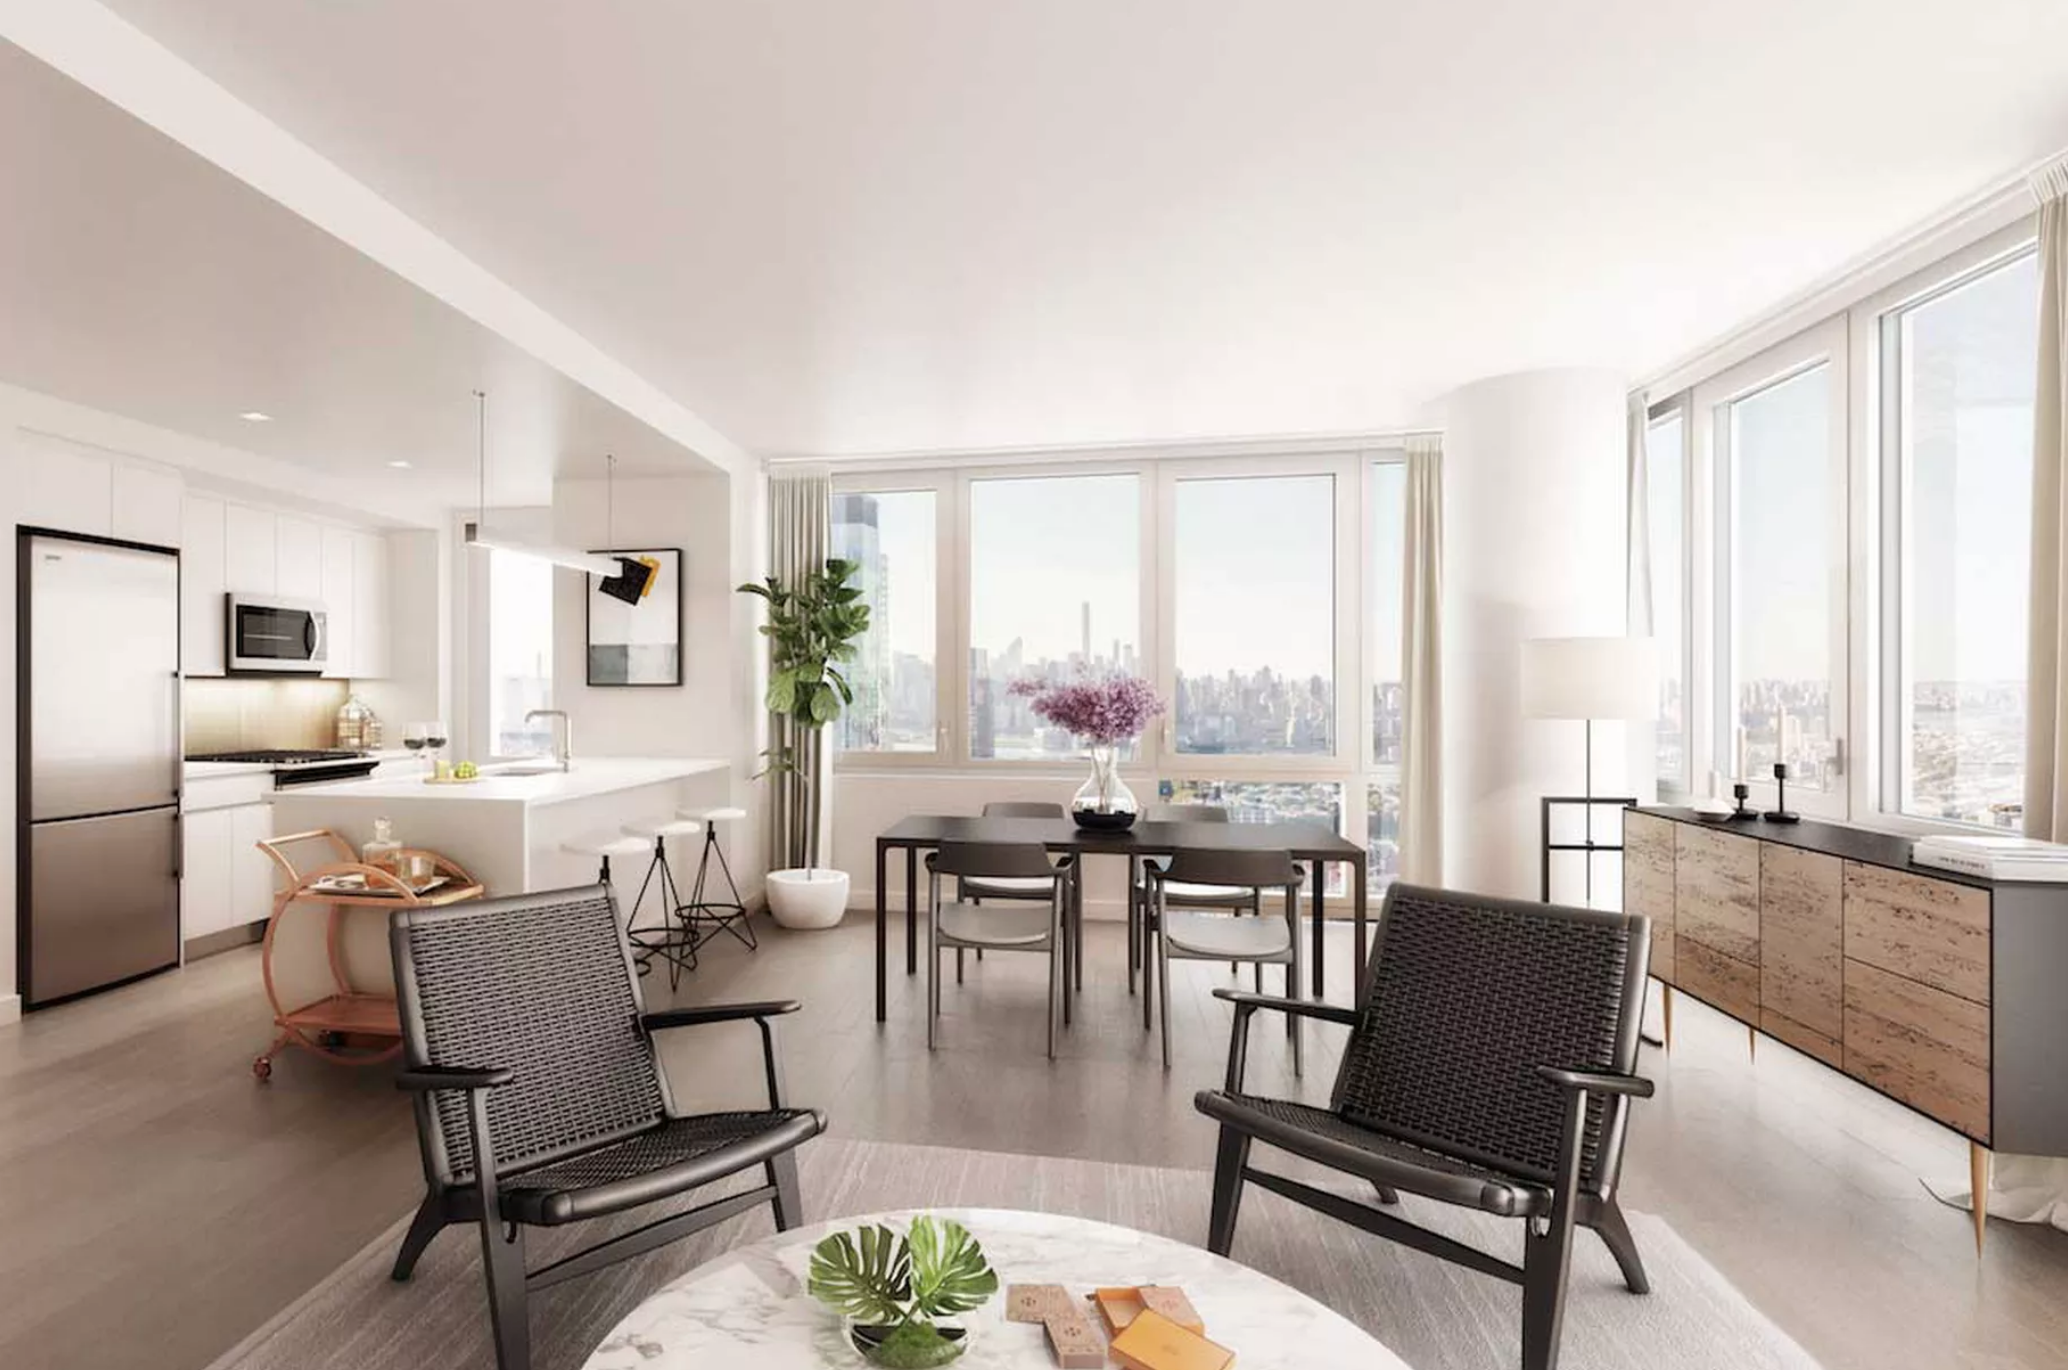 ALTA LIC, Long Island City's First Co-Living Project, To Launch Leasing This Spring